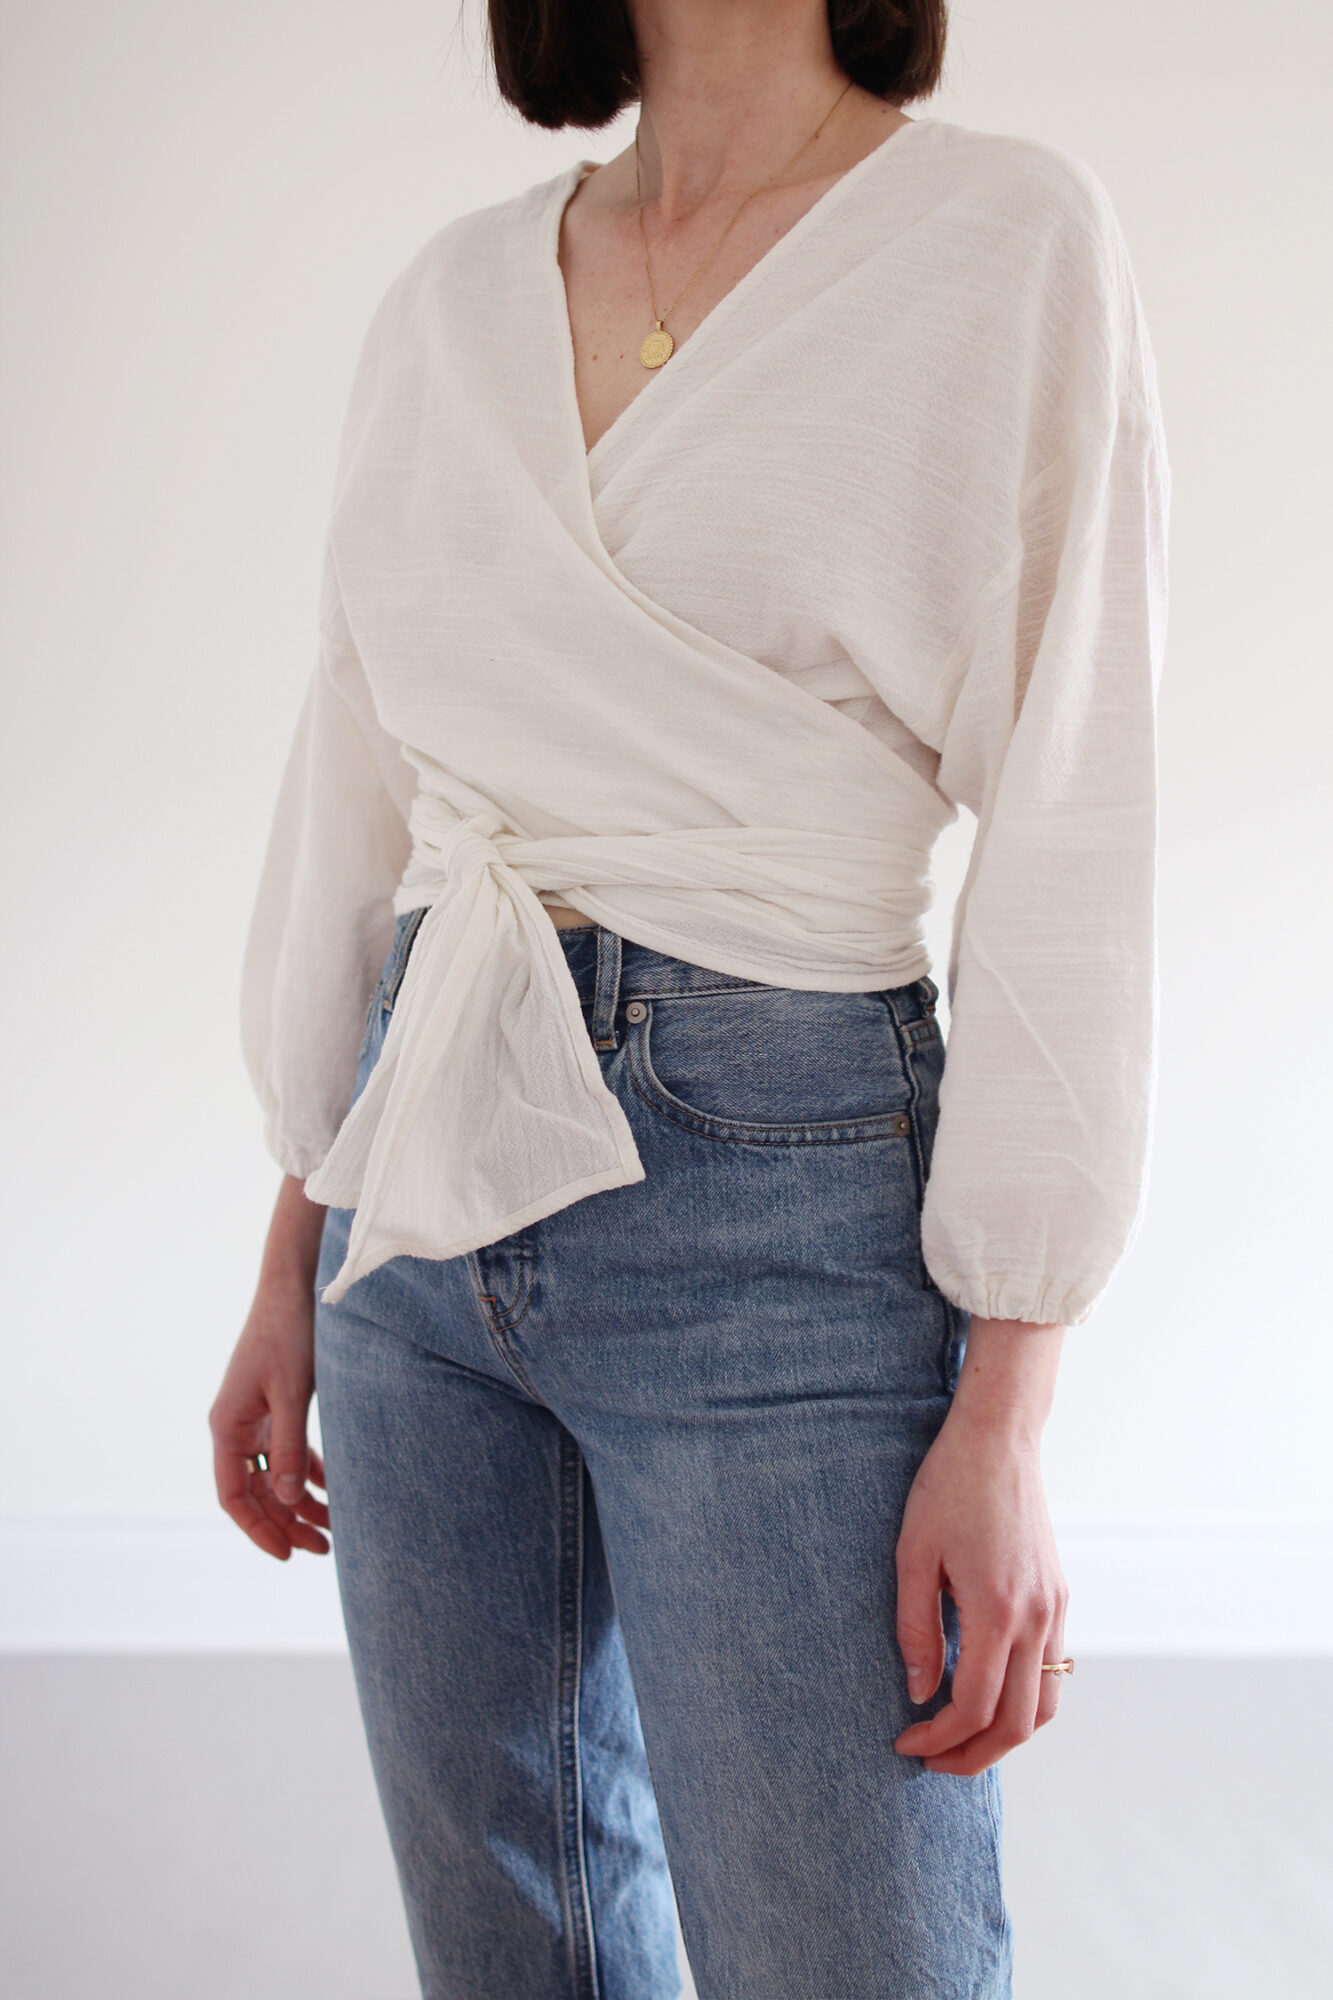 Style Bee - Puffy Sleeves and Blue Jeans